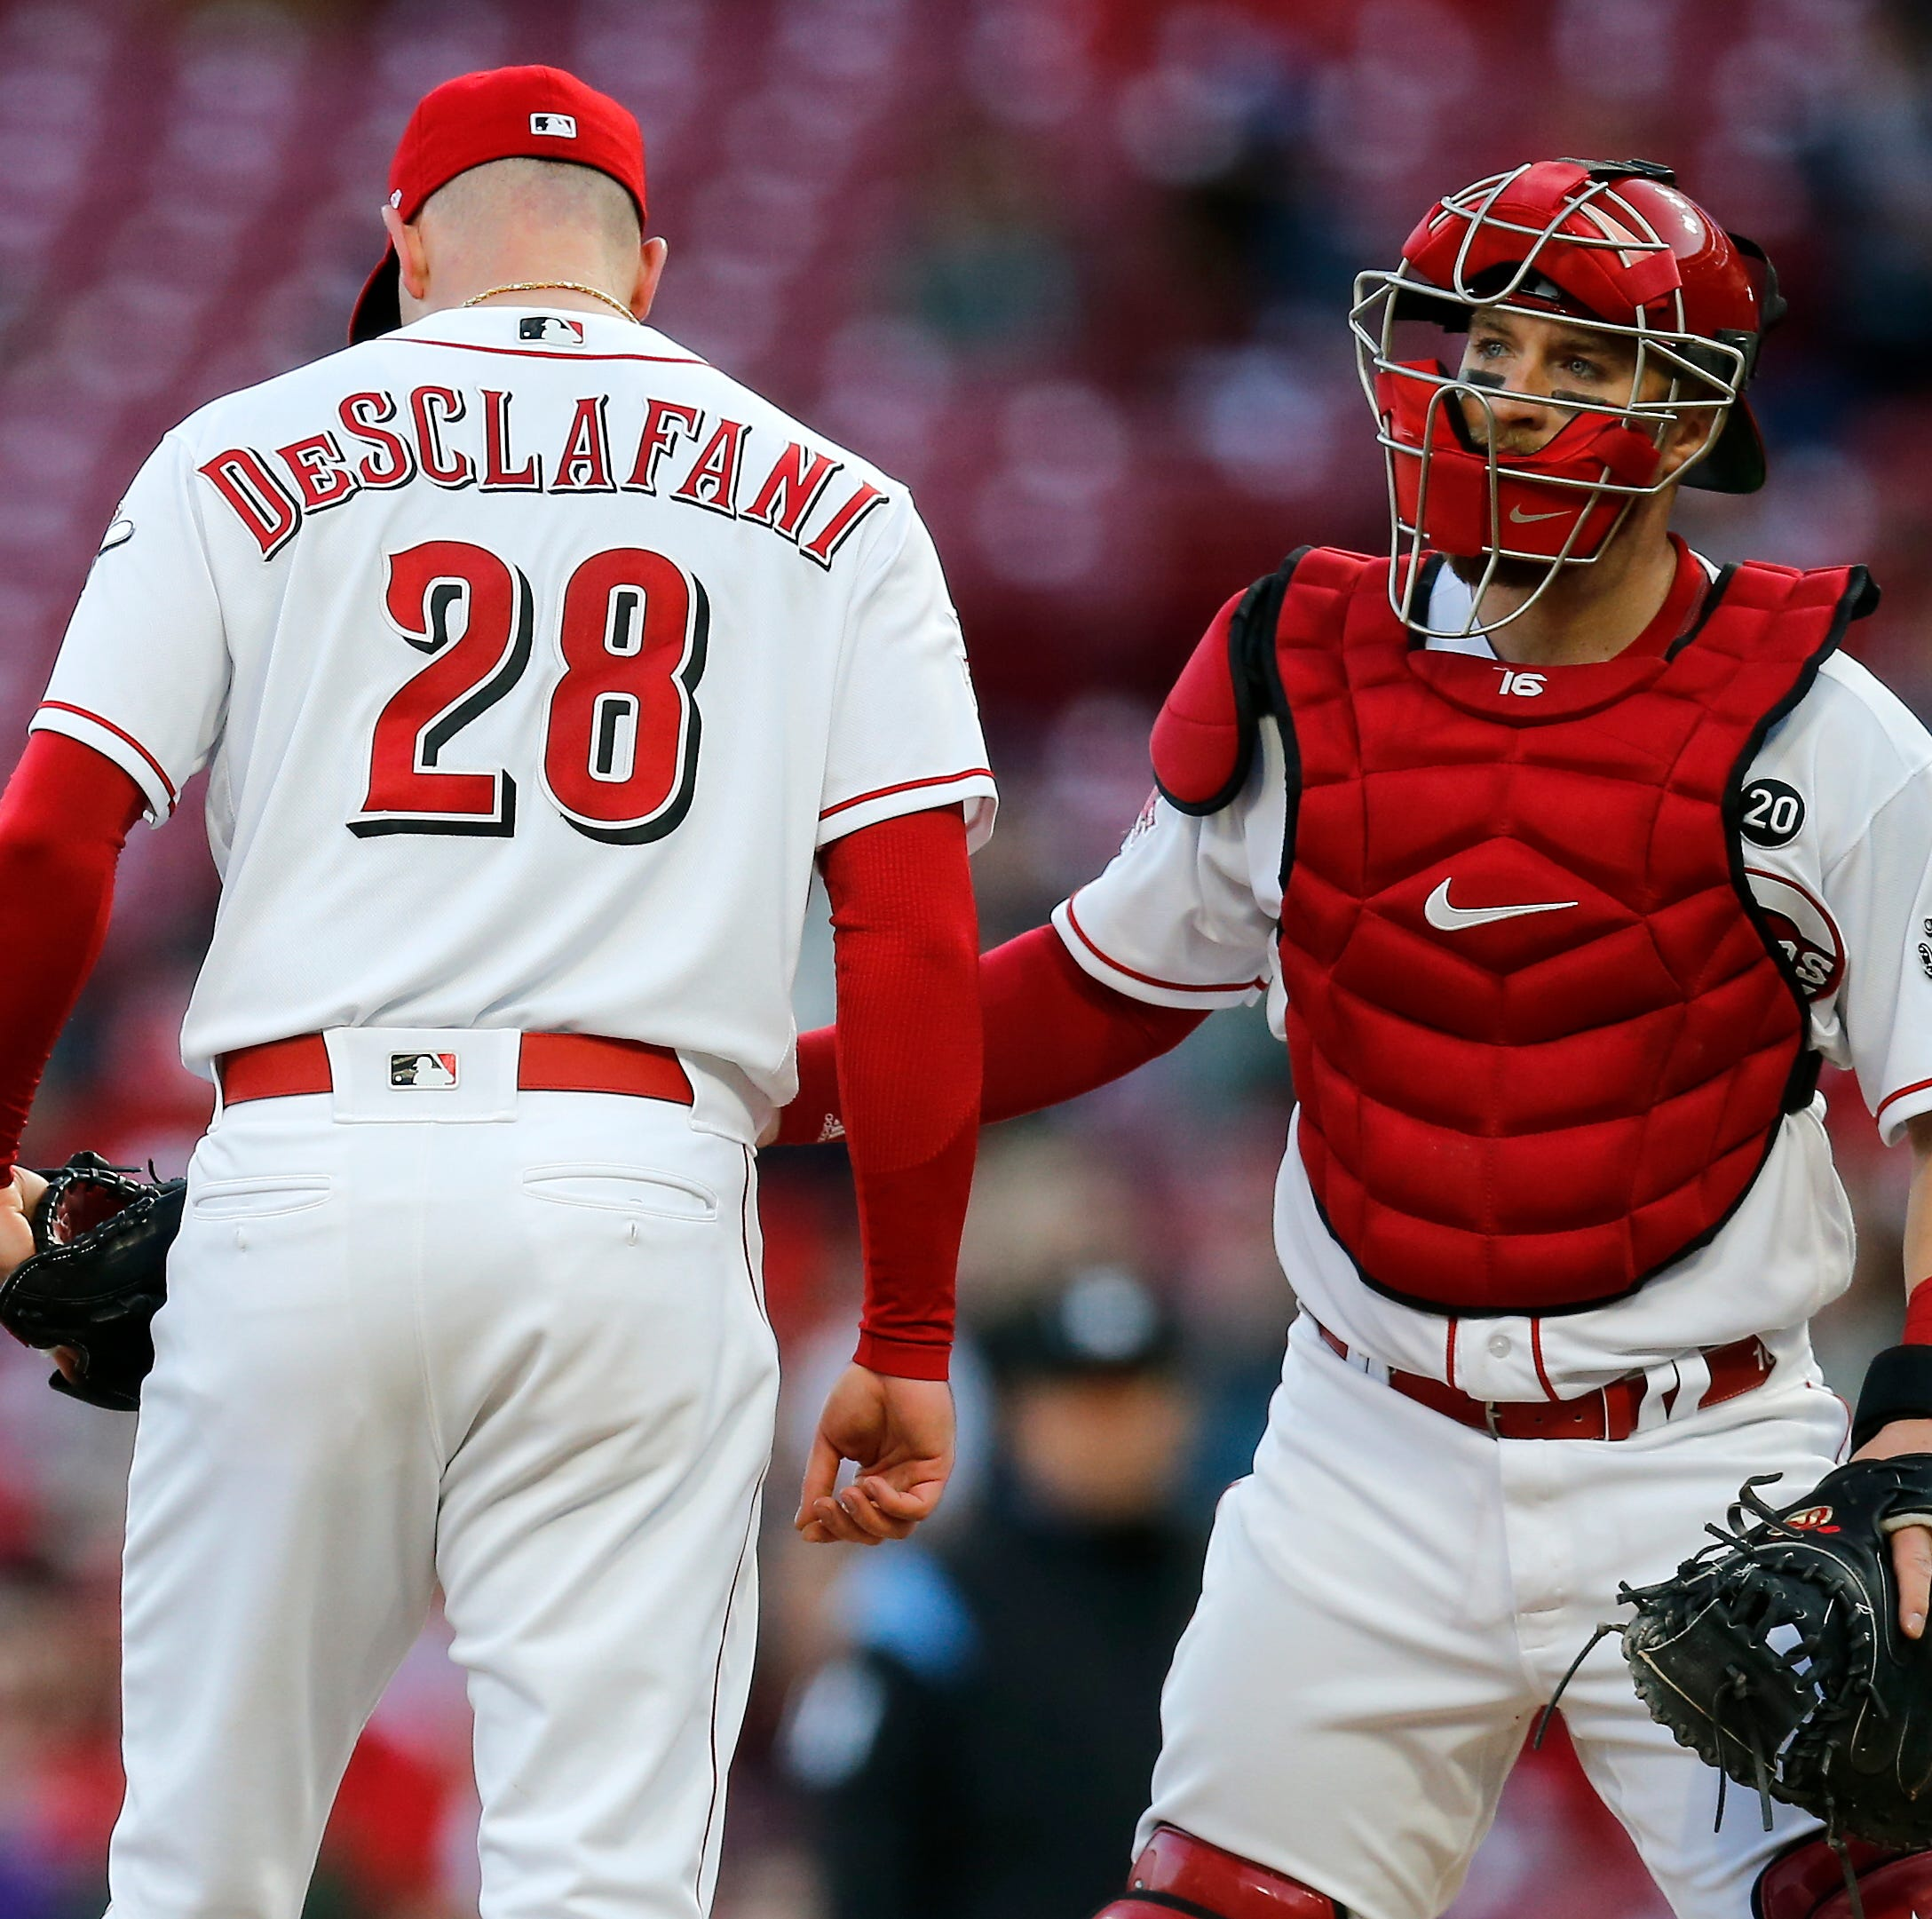 Orlando Arcia's 3-run homer drops the Cincinnati Reds in a 4-3 loss to Milwaukee Brewers